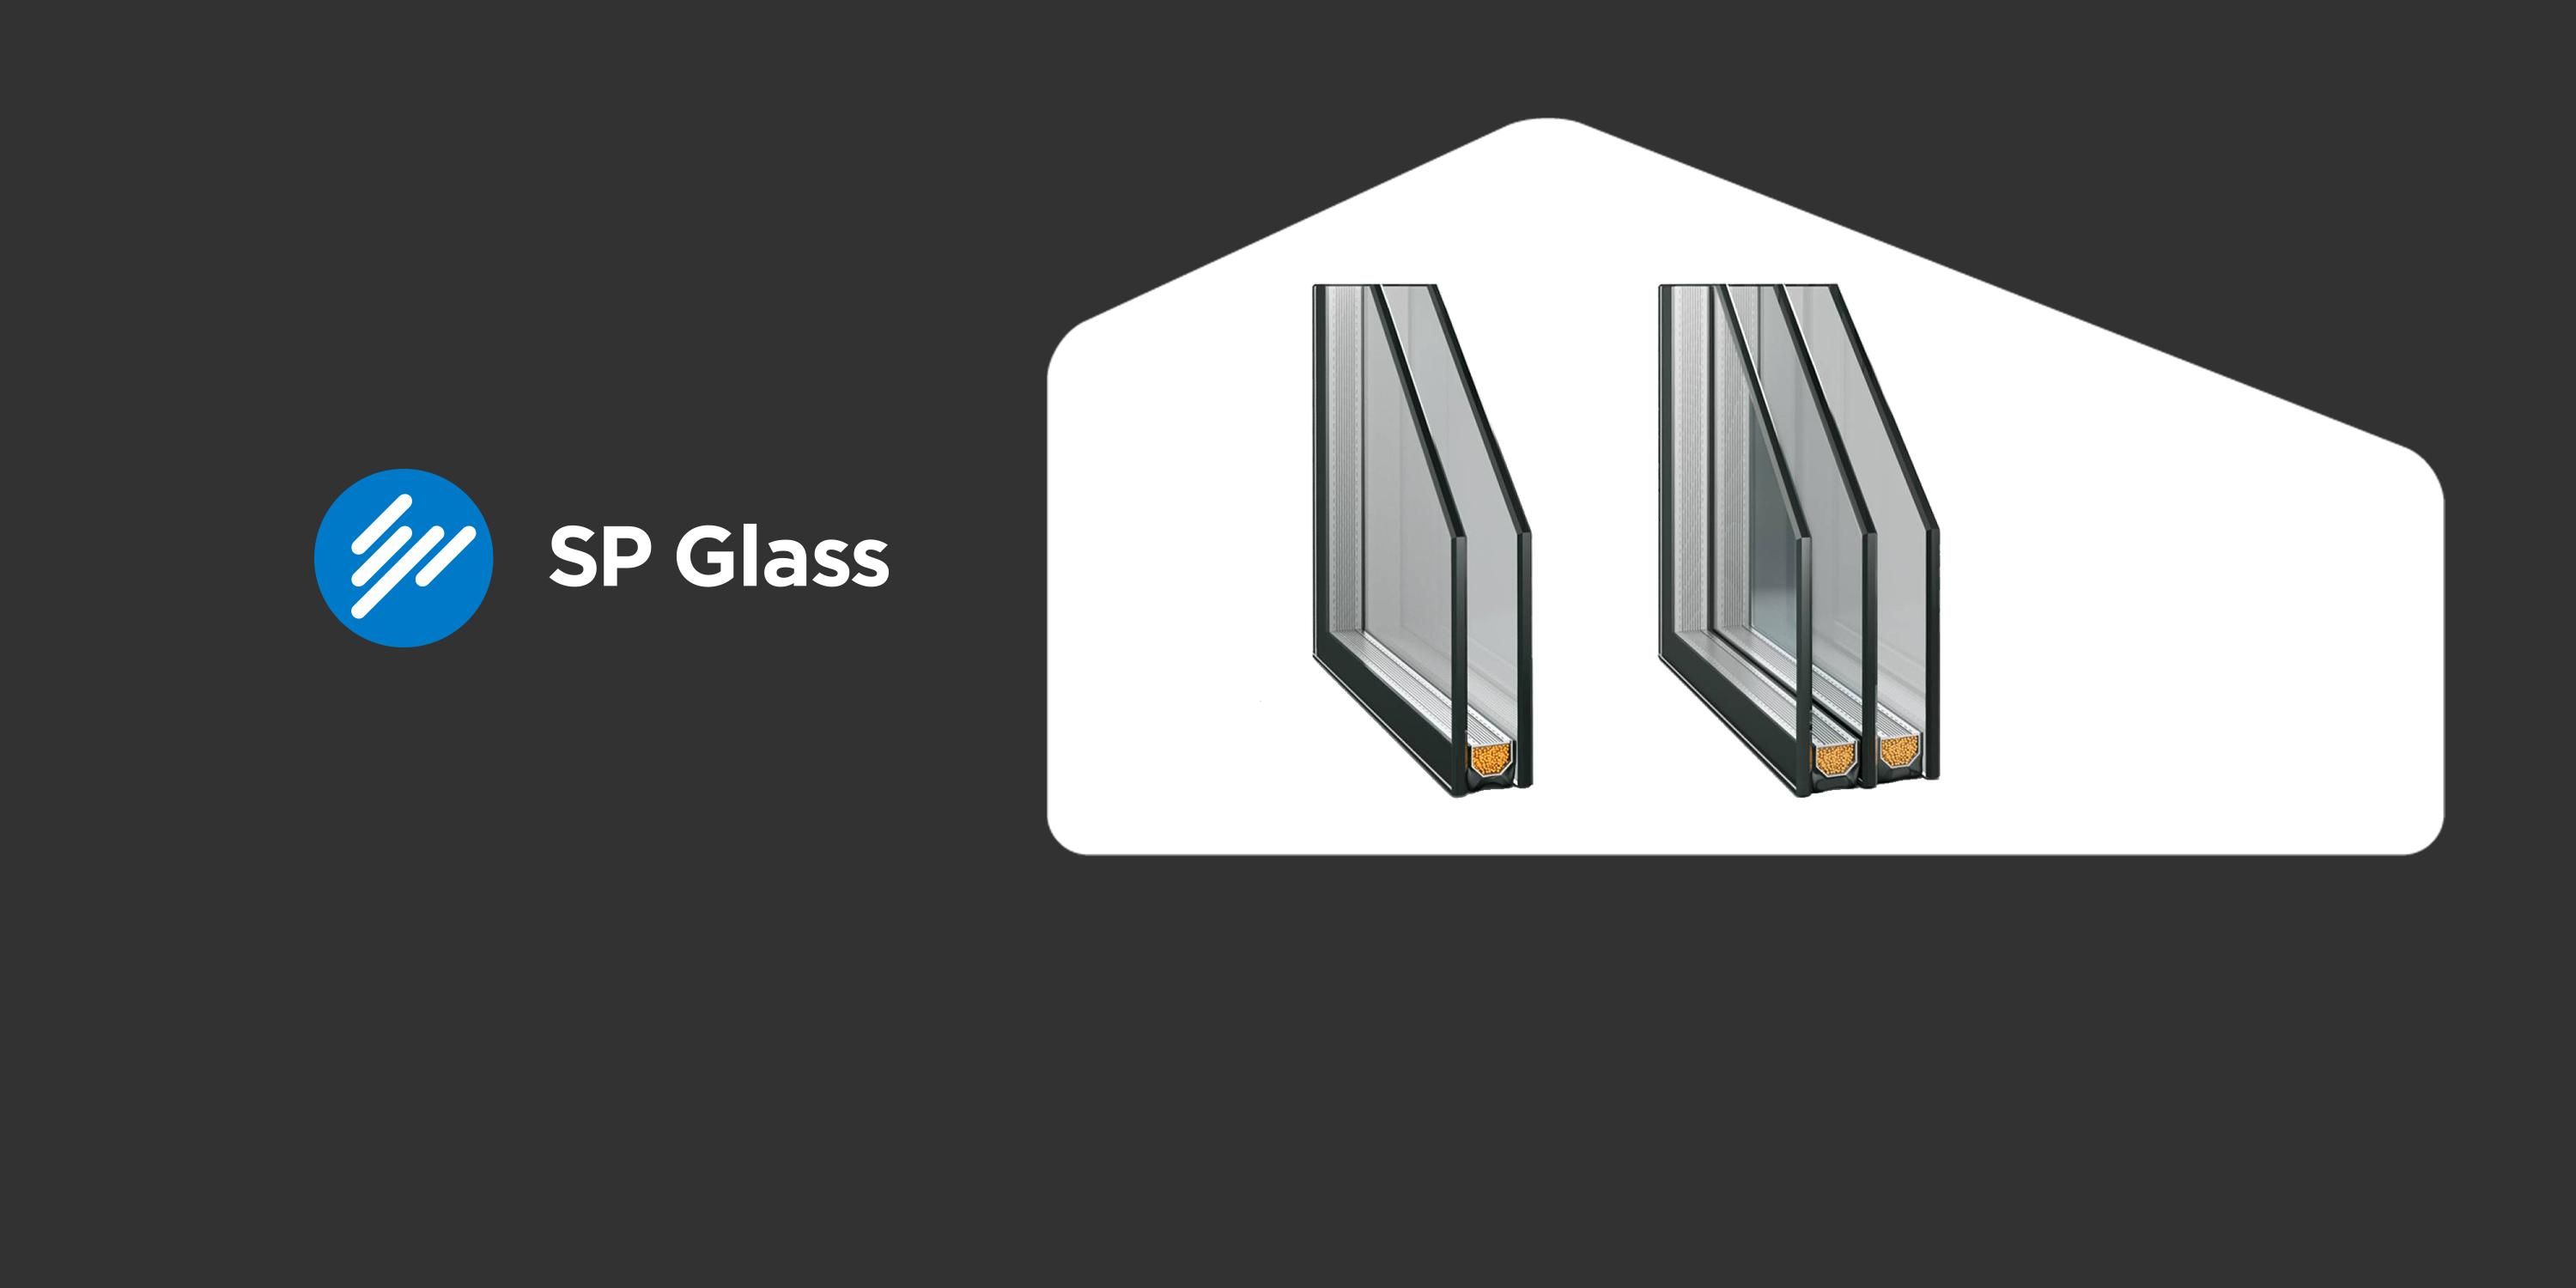 Insulating glass units – choose from 4 colors